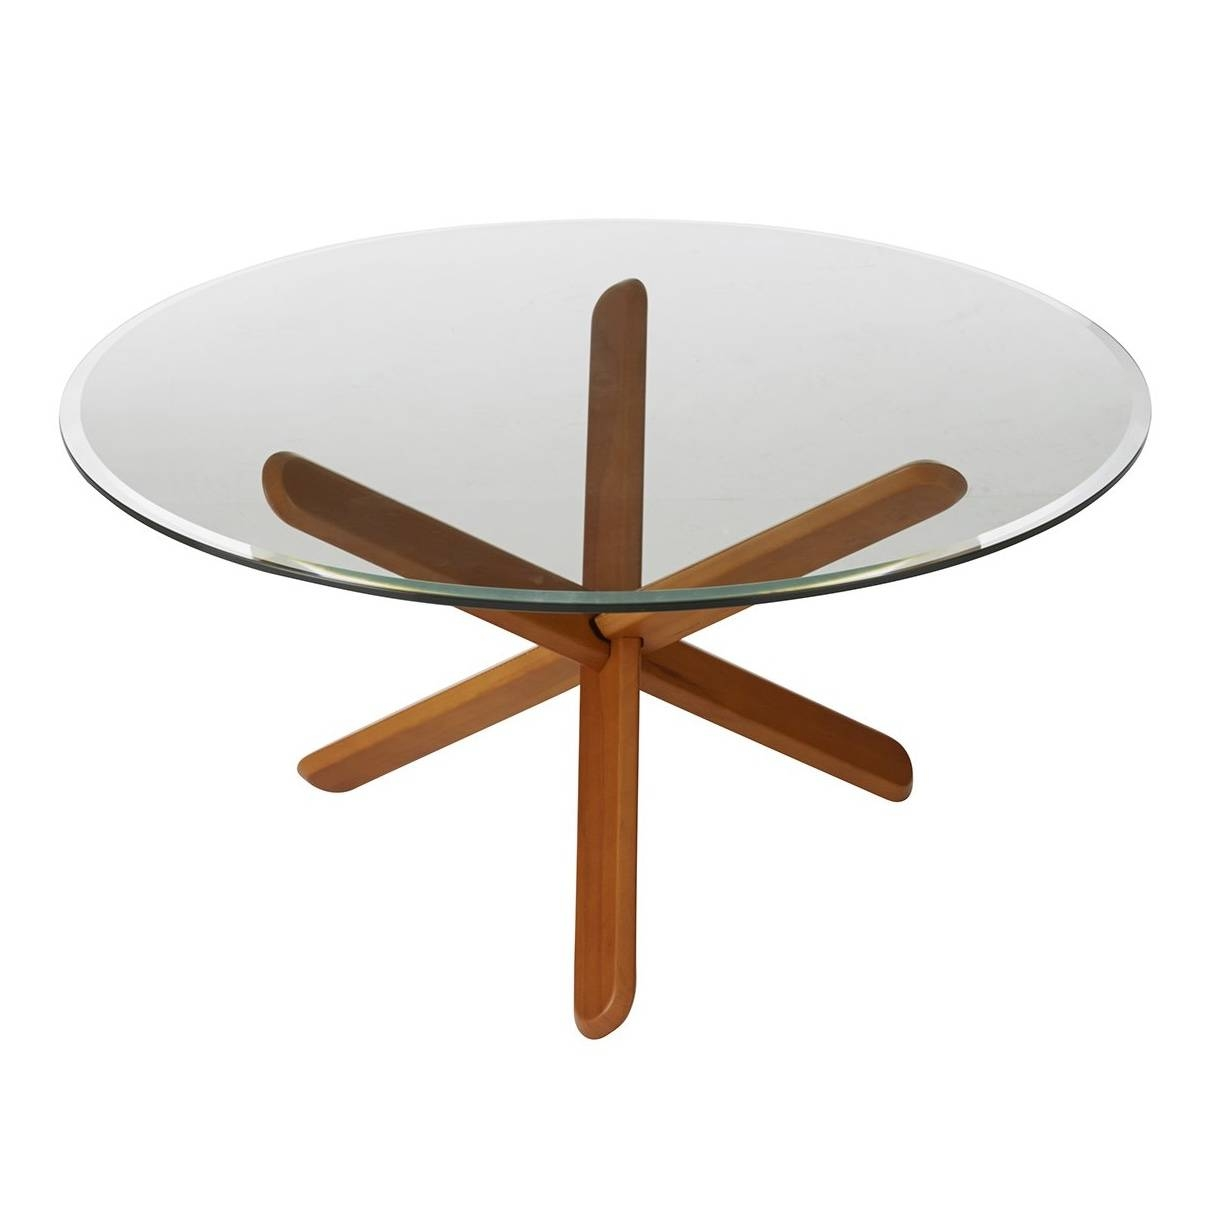 Listings Furniture Tables Coffee Tables – Cocinacentral.co pertaining to Swirl Glass Coffee Tables (Image 13 of 30)